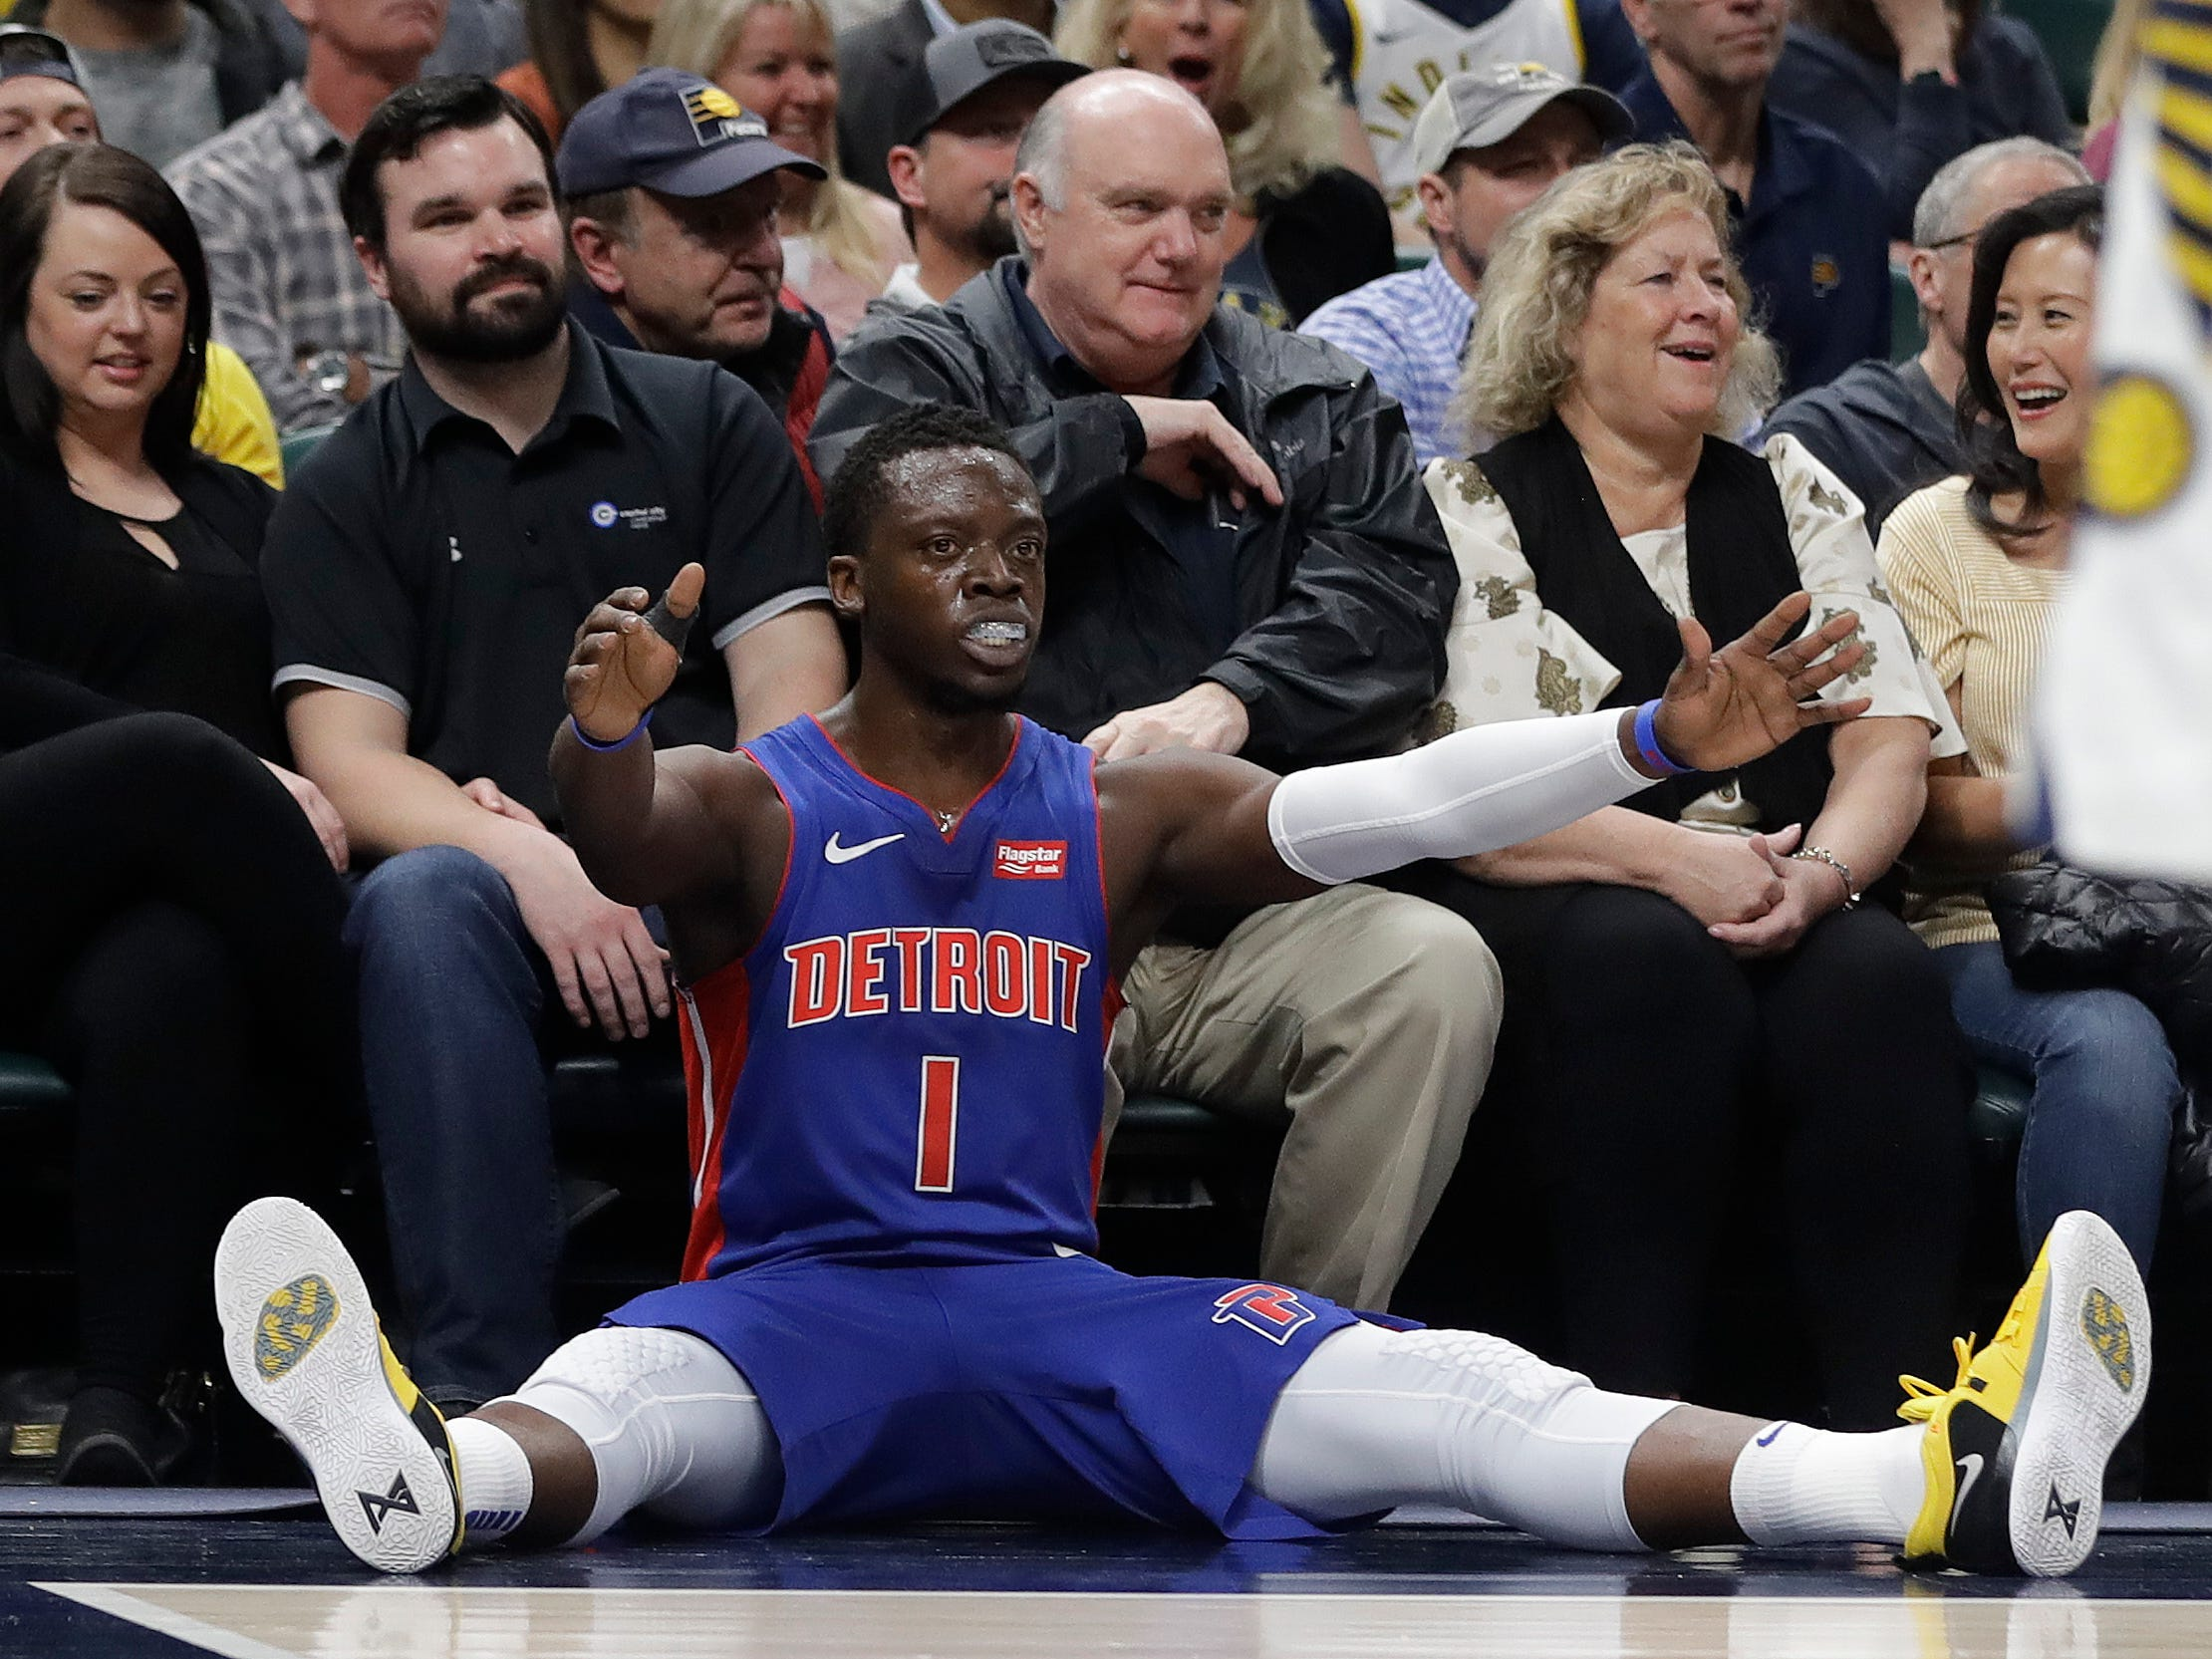 Detroit Pistons' Reggie Jackson reacts after making a shot and getting fouled during the first half against the Indiana Pacers, Monday, April 1, 2019, in Indianapolis.